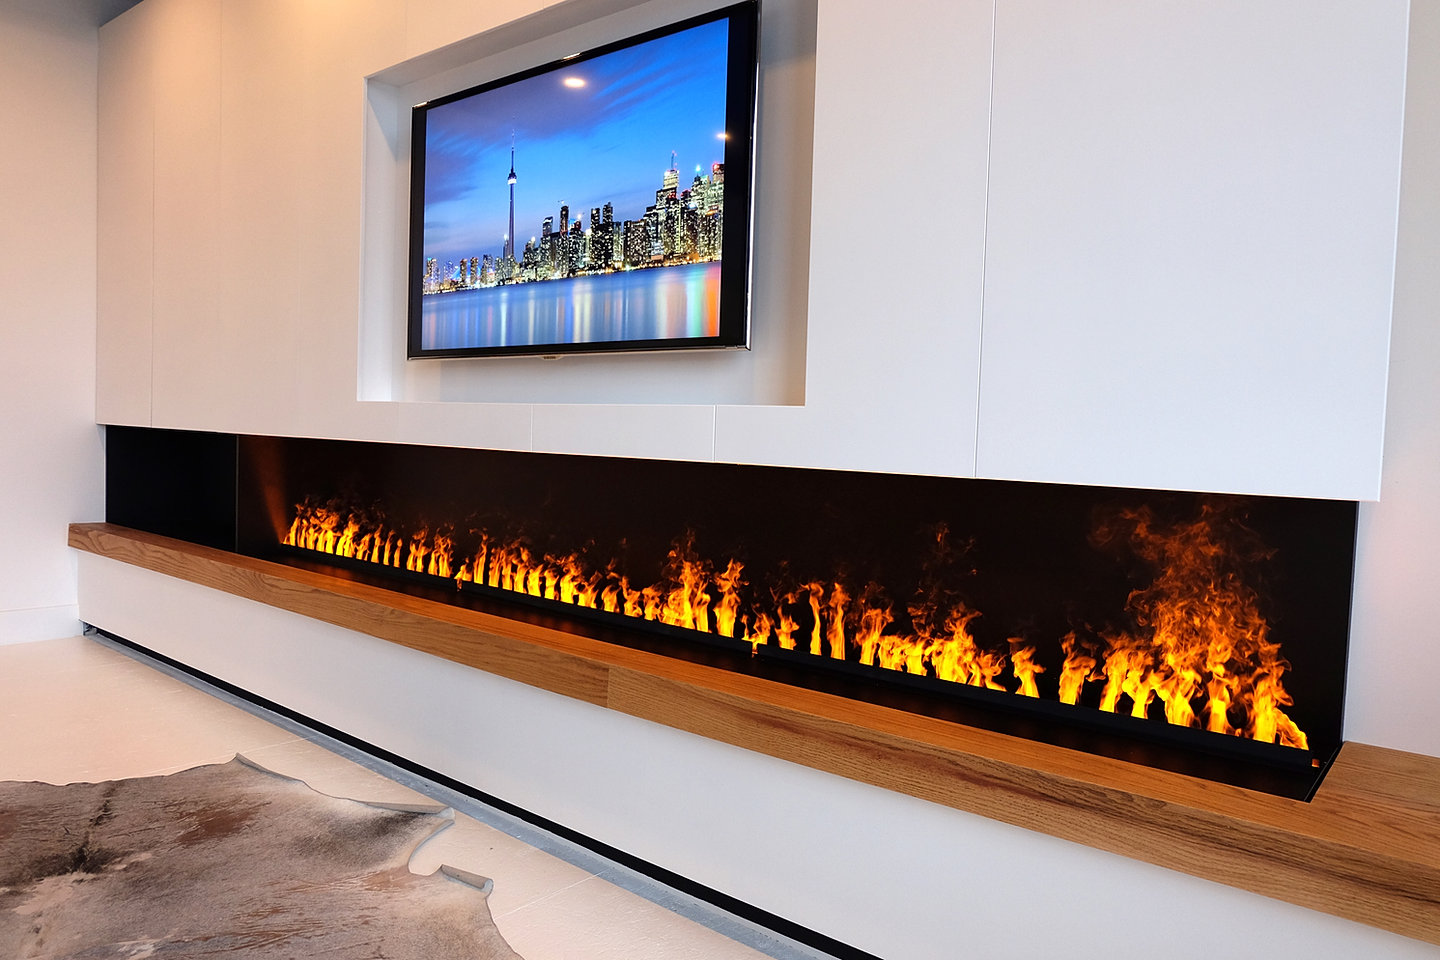 The best modern Fireplaces store in the GTA | Ortal Gas Fireplaces Expert | Electric Water Vapor Fireplaces Specialist | Design Conception Installation